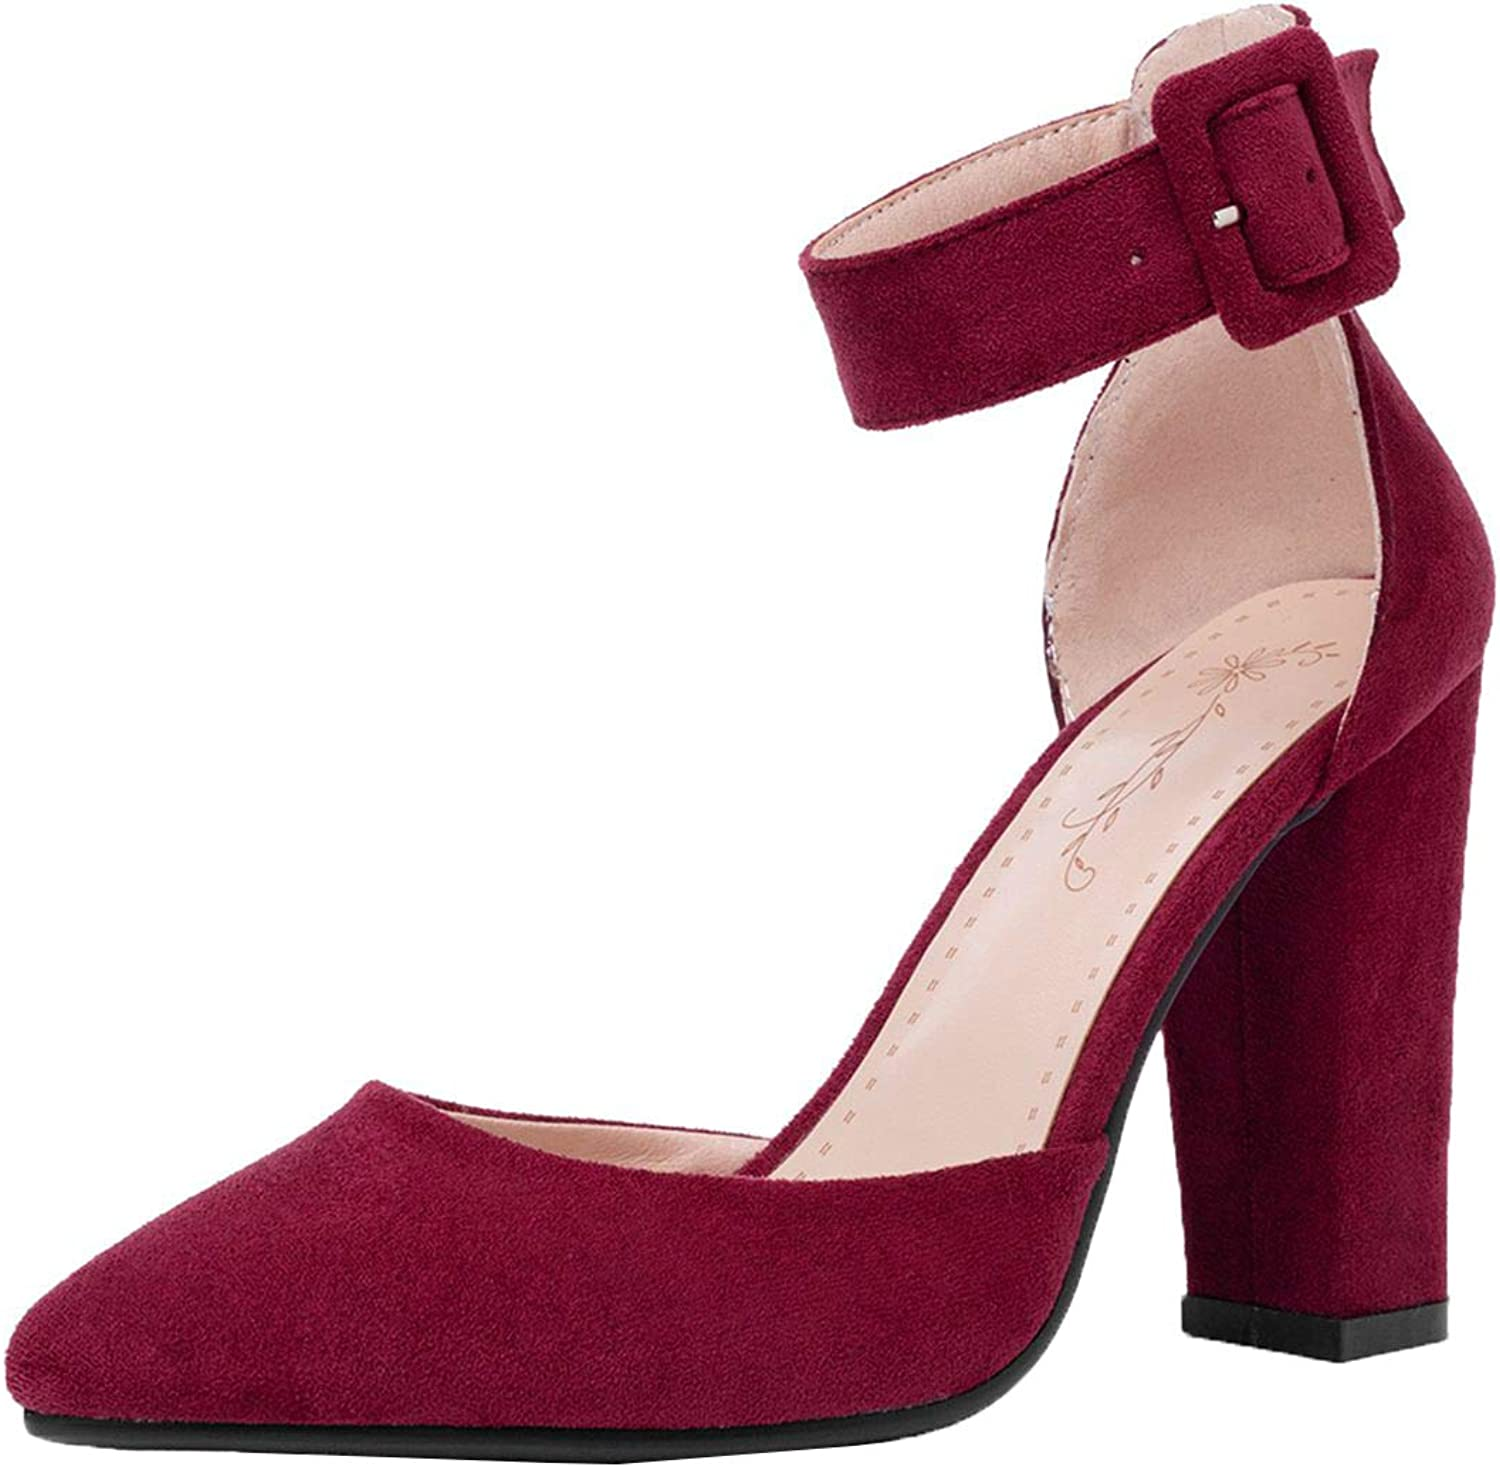 Vitalo Womens Pointed Toe Chunky Heel D'Orsay Pumps Ankle Strap Court shoes